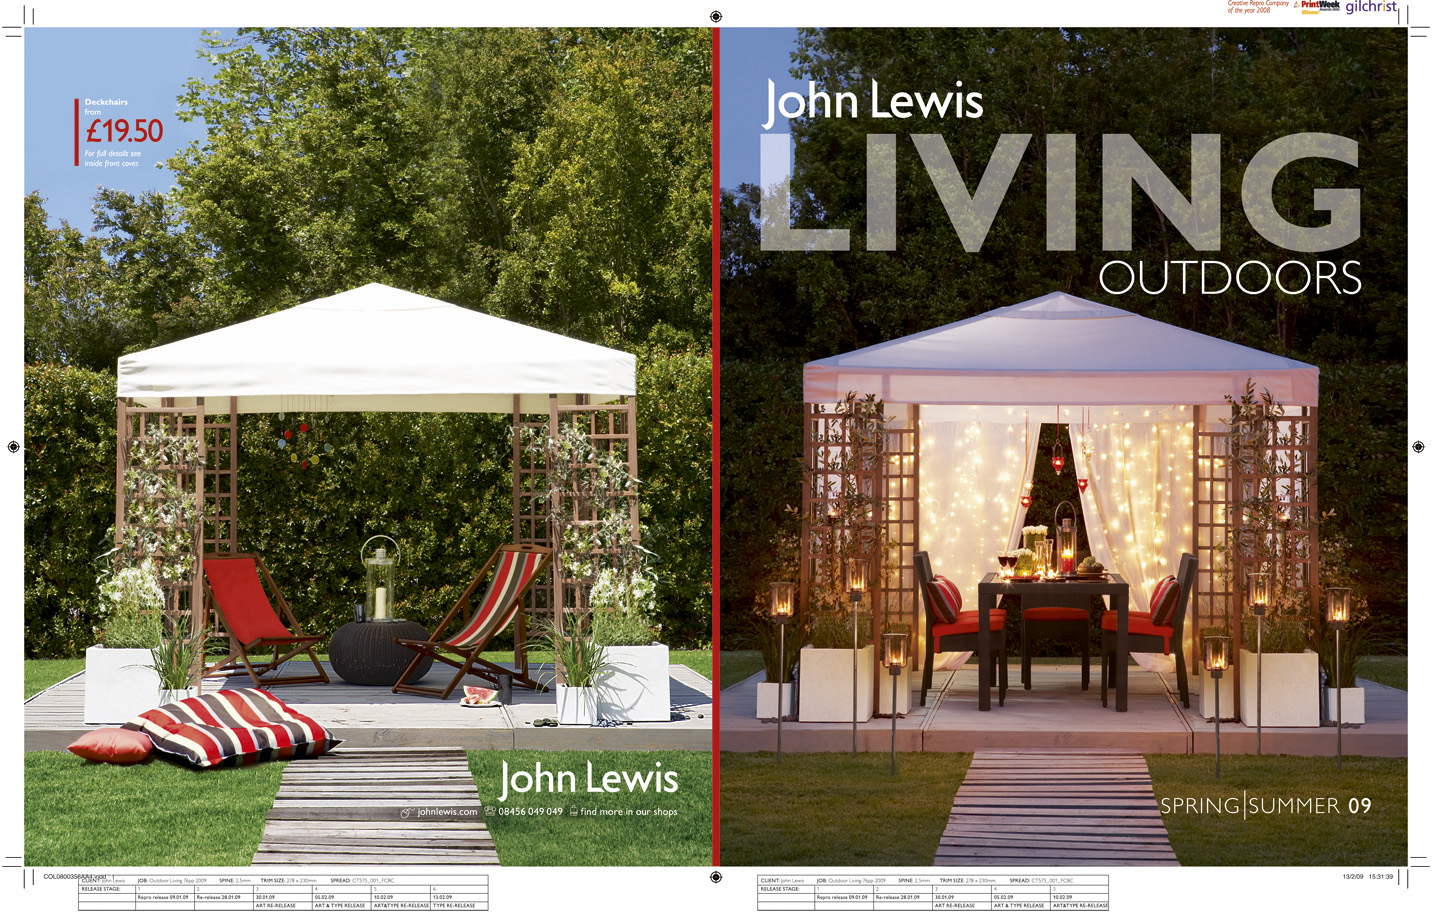 John Lewis Outdoor Brochure Cover FINAL RETOUCHED